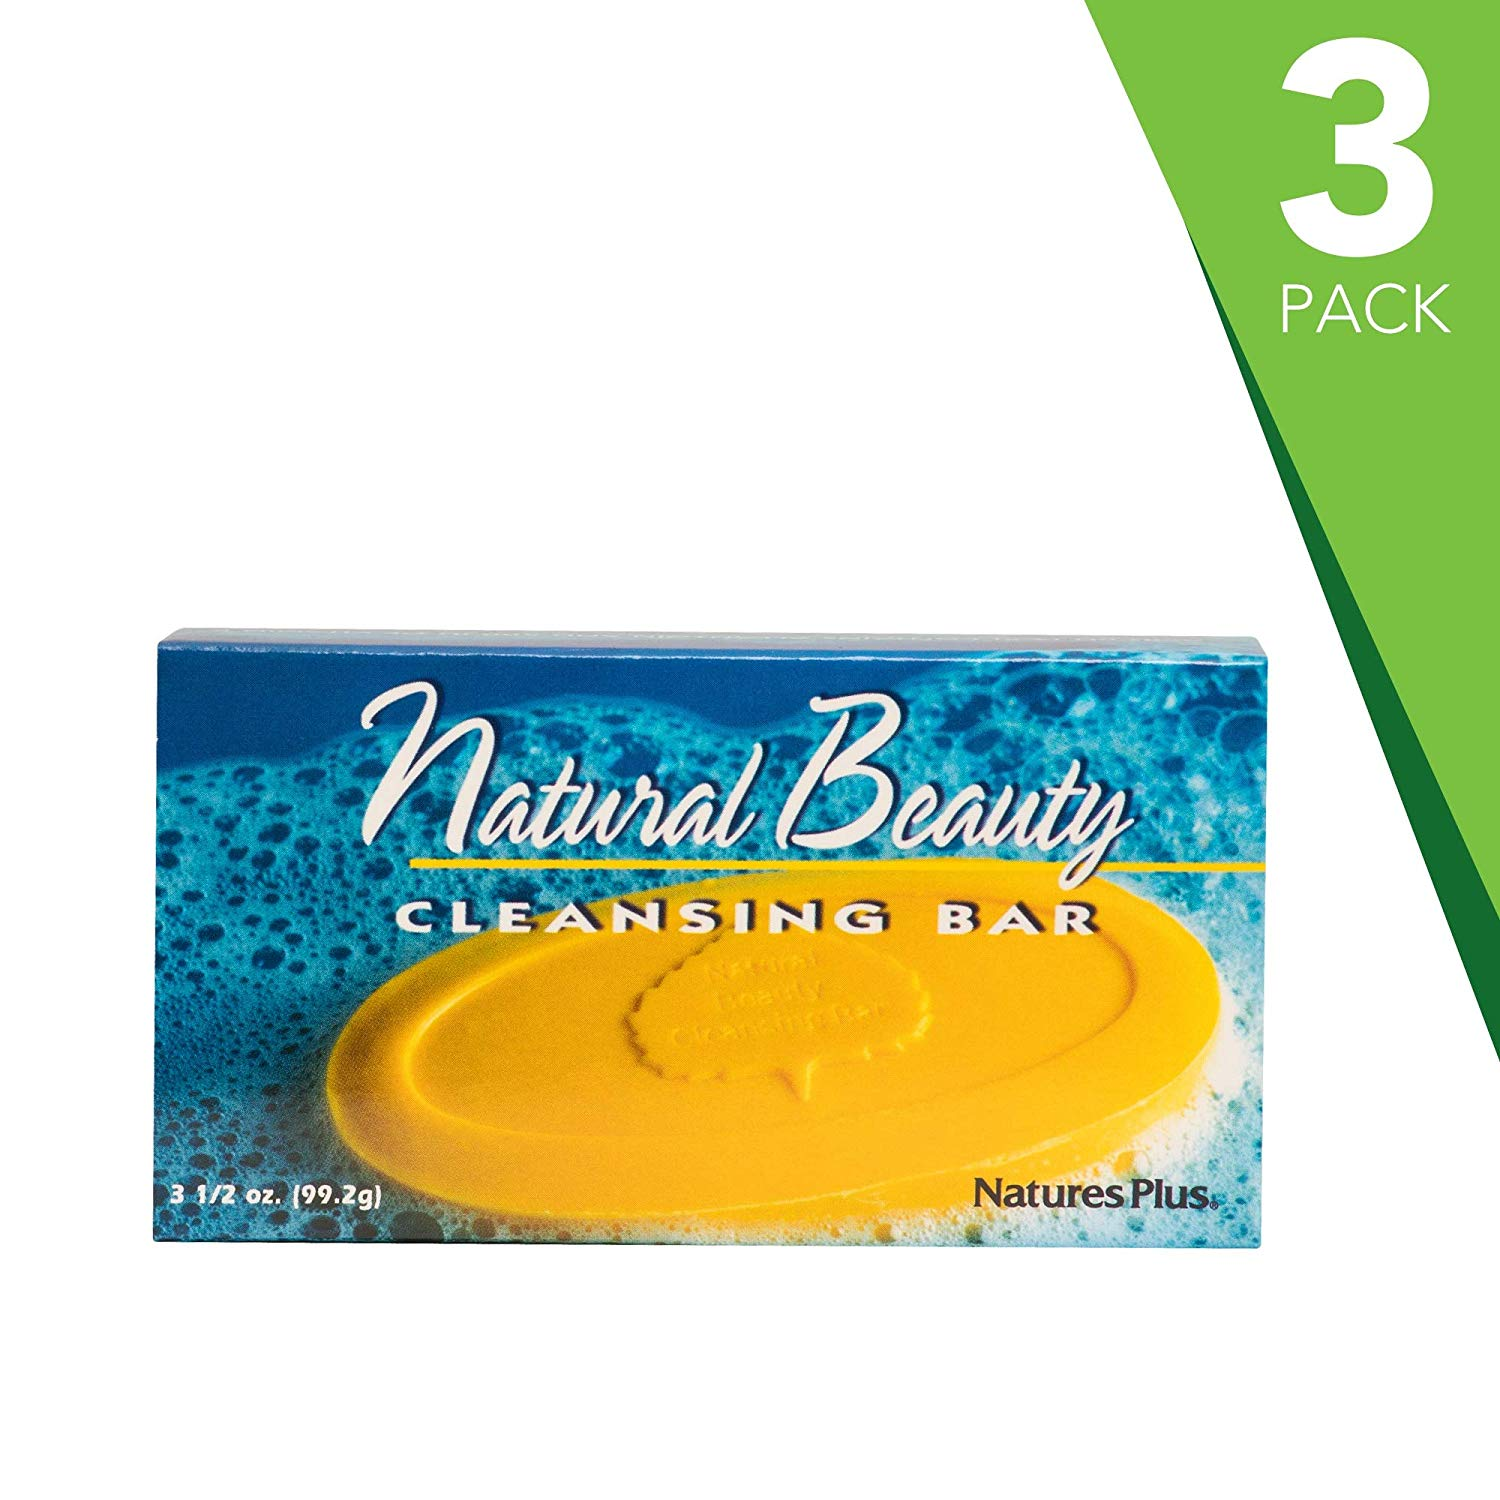 NaturesPlus Natural Beauty Cleansing Bar (3 Pack) - 500 iu Vitamin E with Allantoin, 3.5 Ounce Bar - Natural Cleanser, Made with Organic Ingredients, Anti-Aging- pH of 4.5 – Vegan